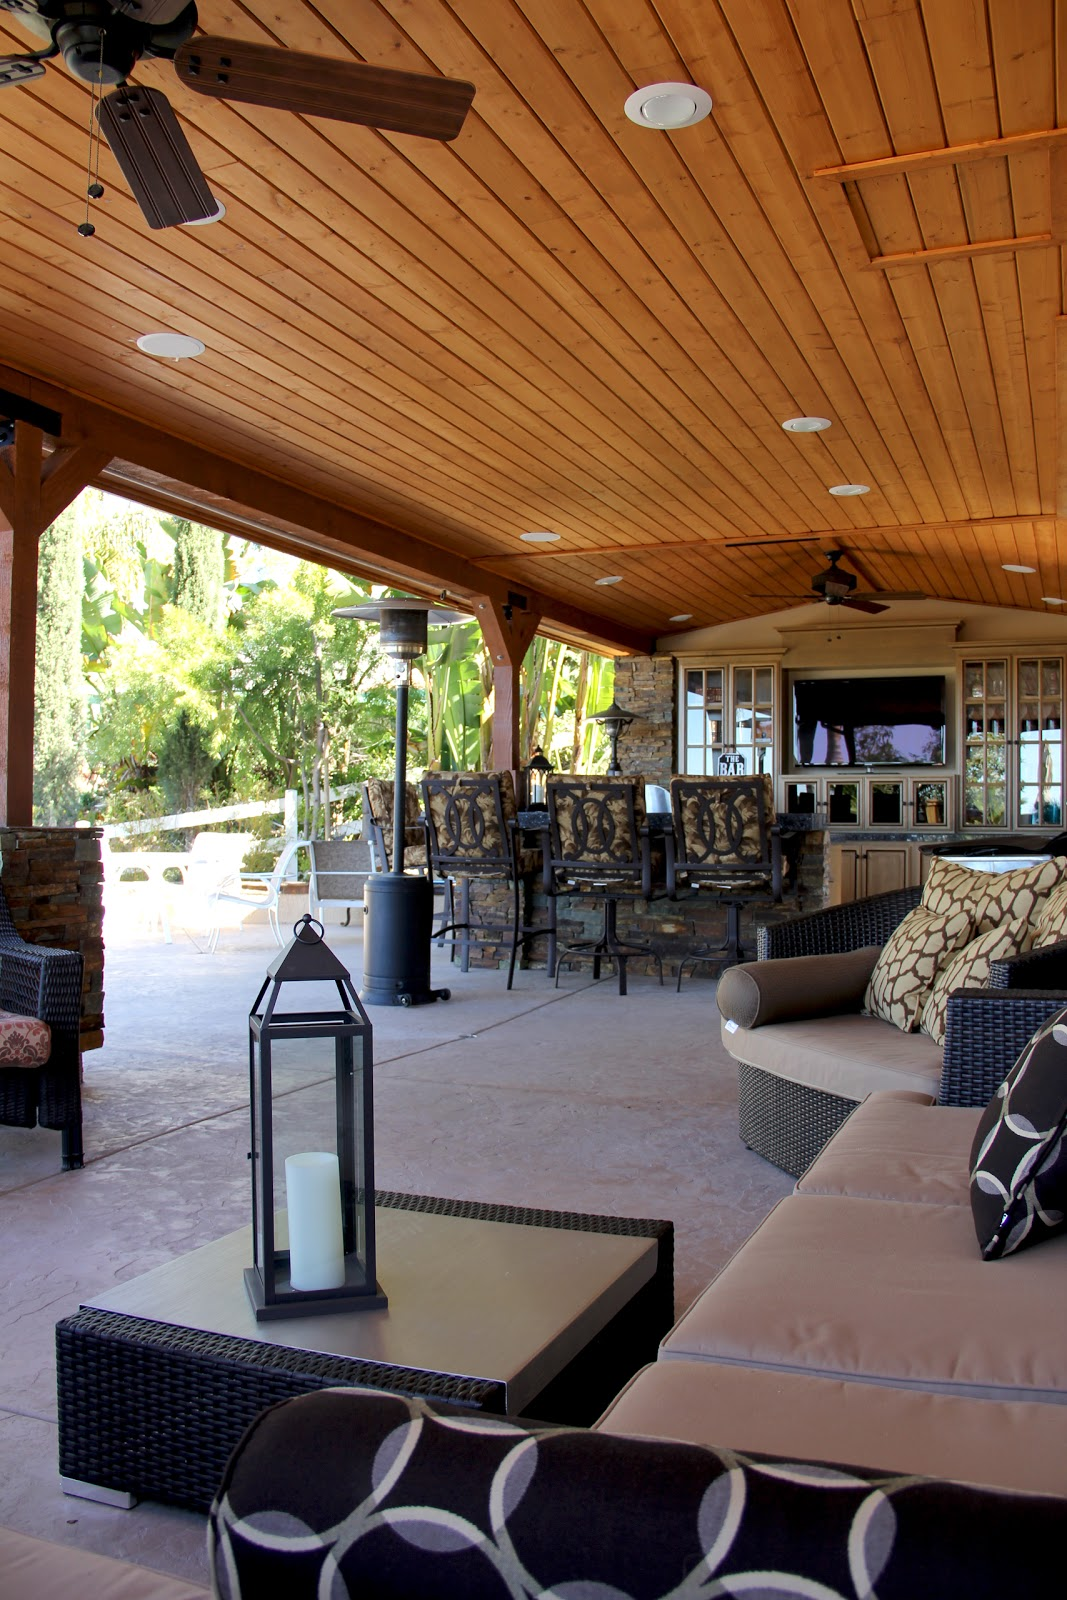 Custom Outdoor Design: Outdoor Kitchen, Living Room, And